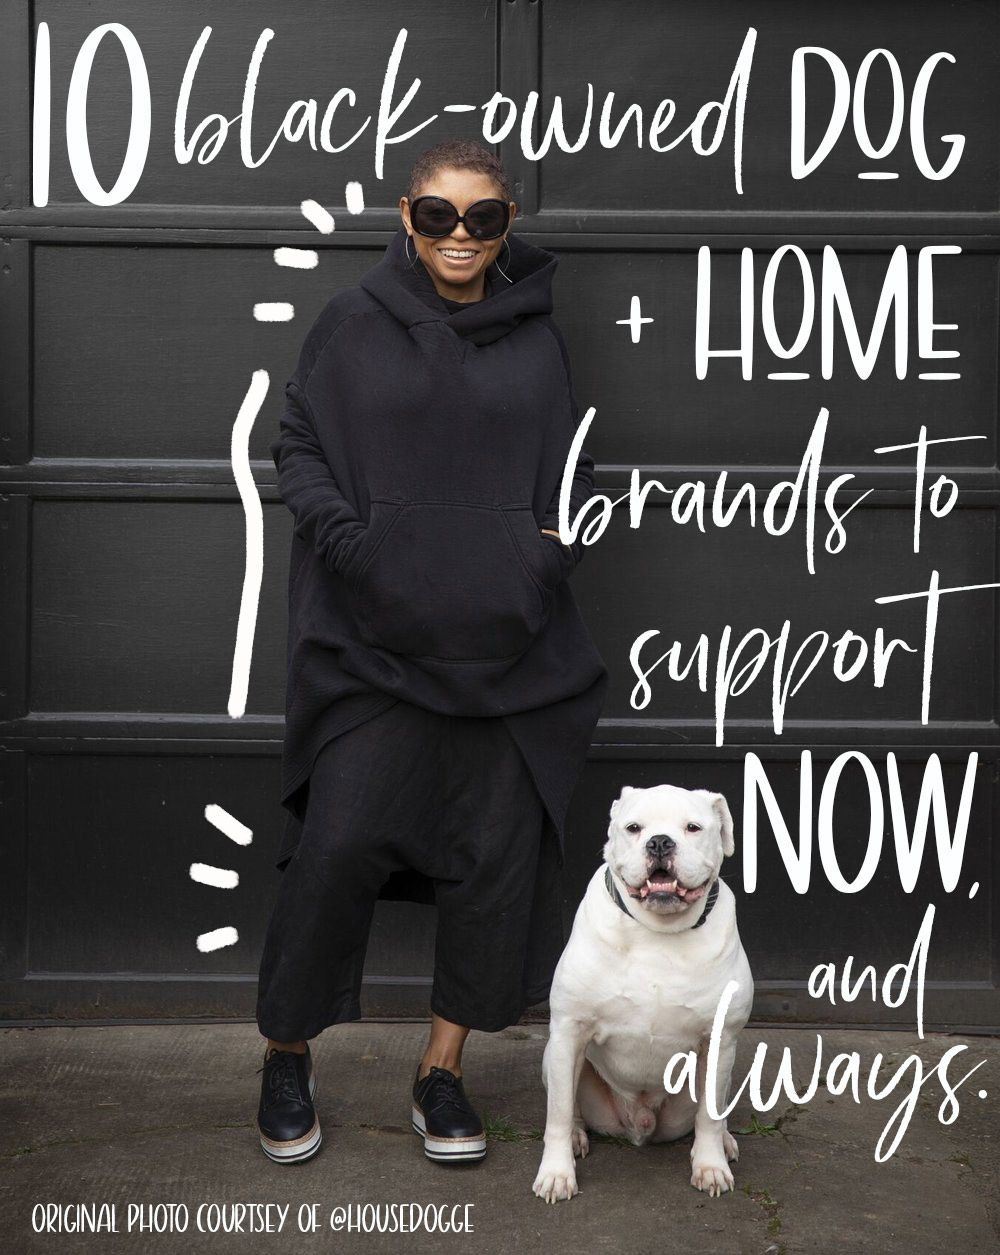 10 Black Owned Dog Brands To Support Now And Always In 2020 Dog Branding Dogs Pet Businesses